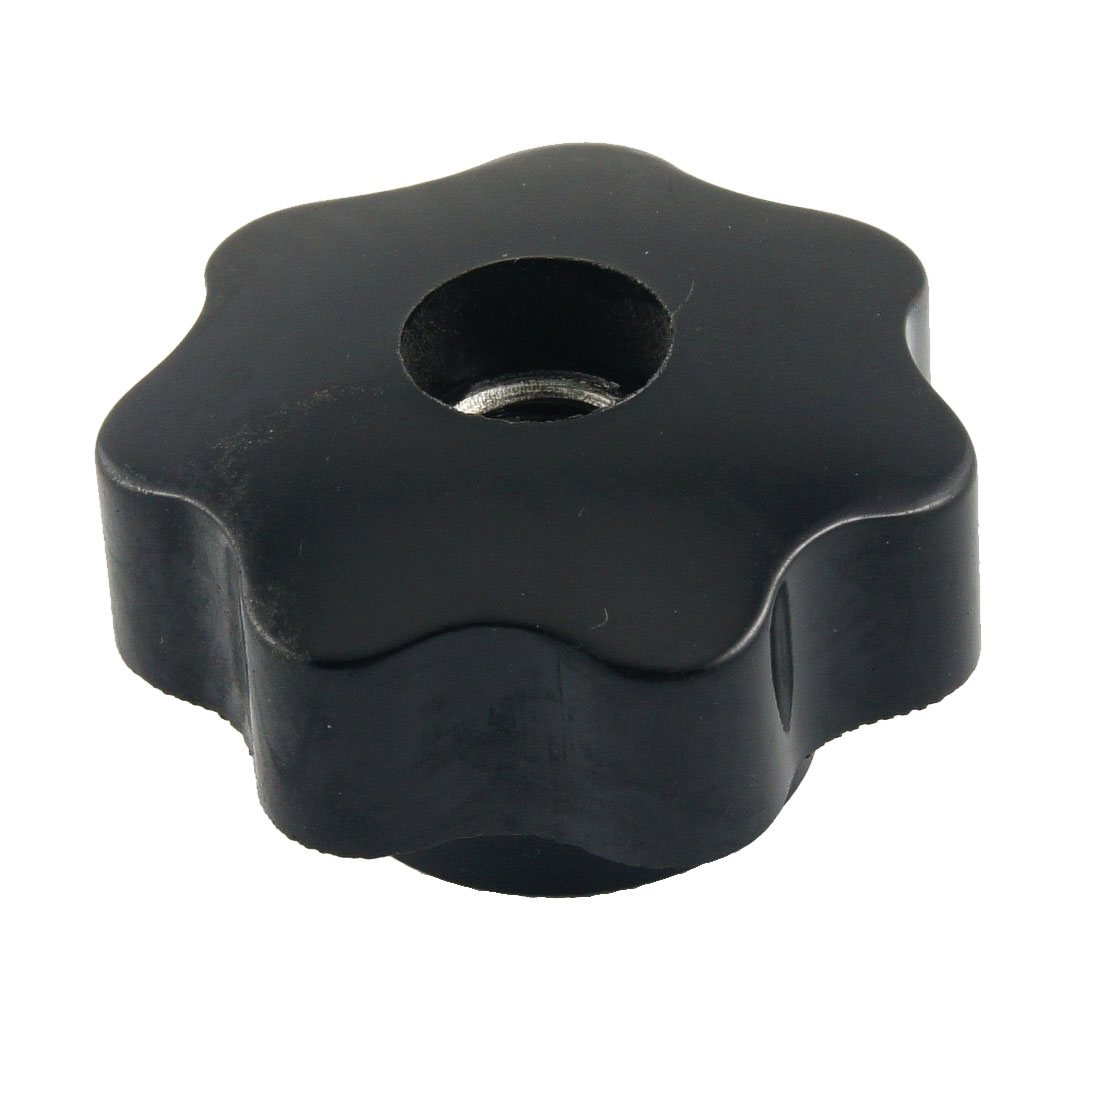 M10 10mm Dia Thread Black Plastic Star Head Clamping Knob Grip